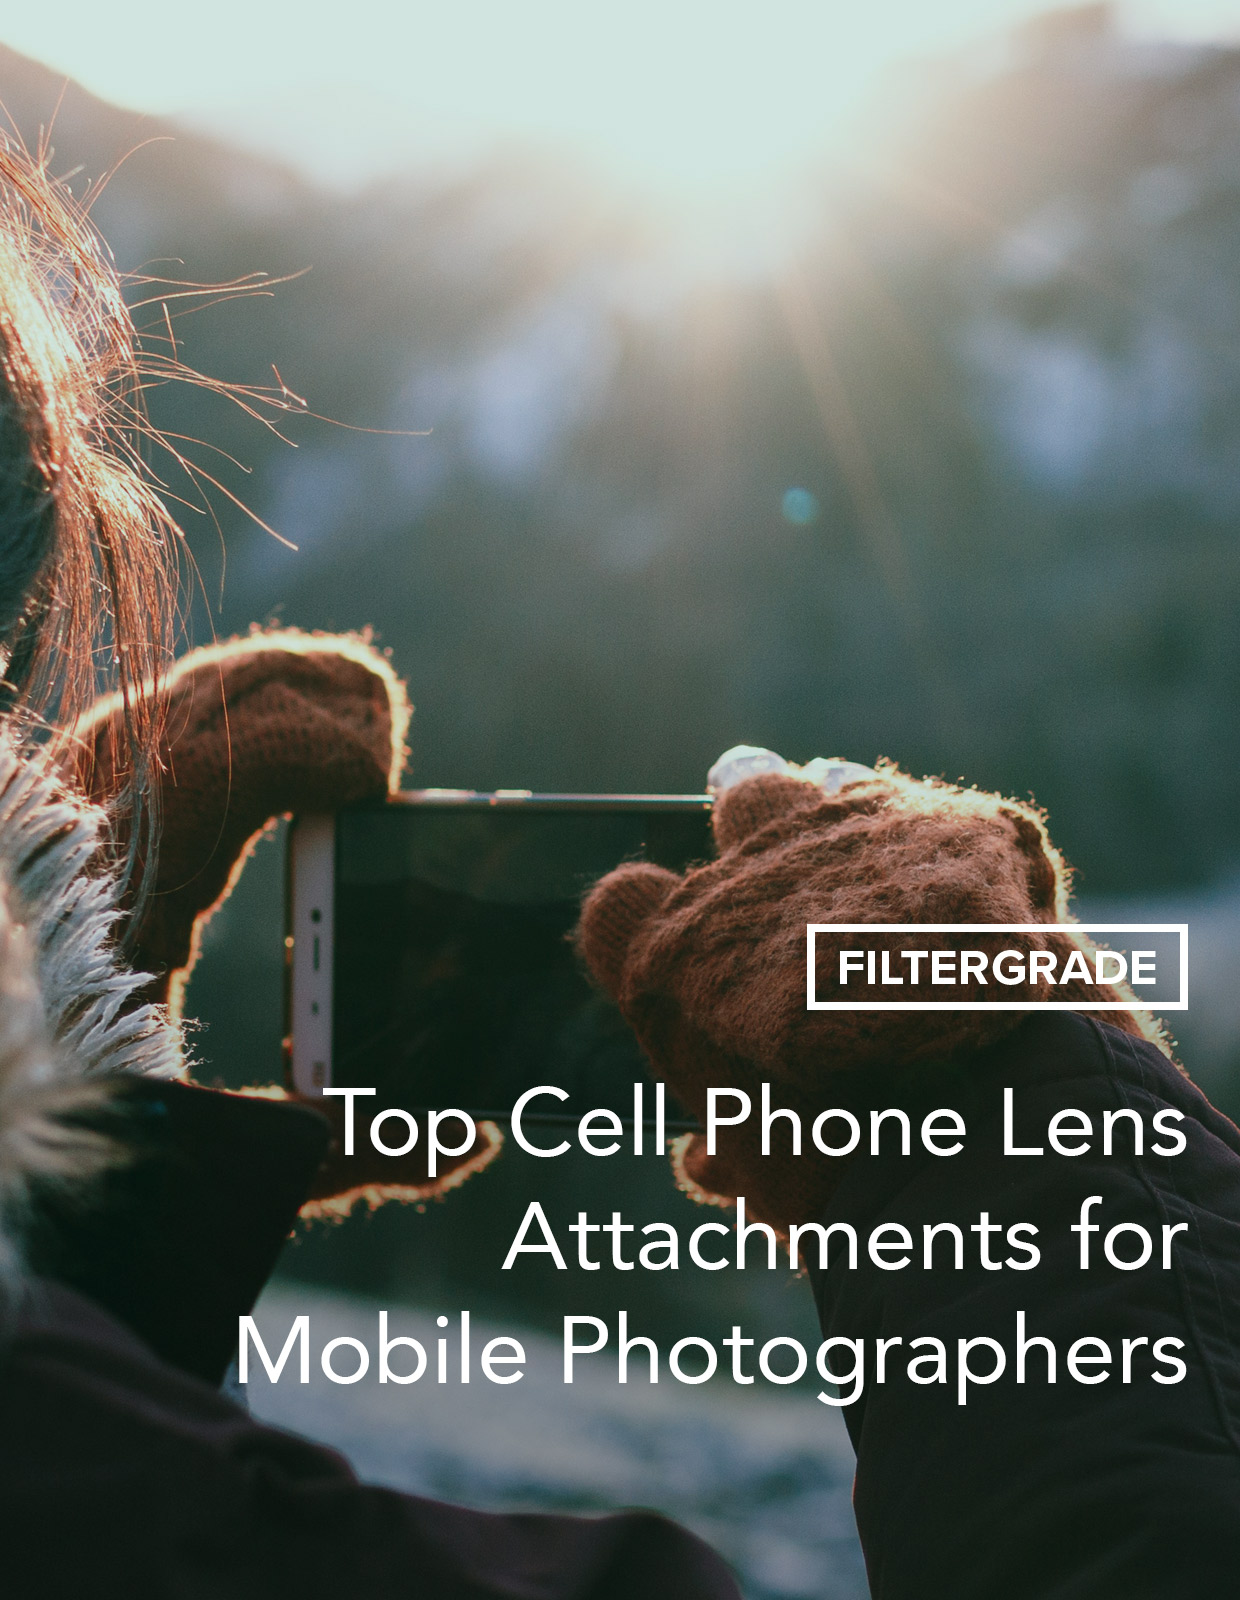 Top Cell Phone and mobile photography lens attachments and accessories.